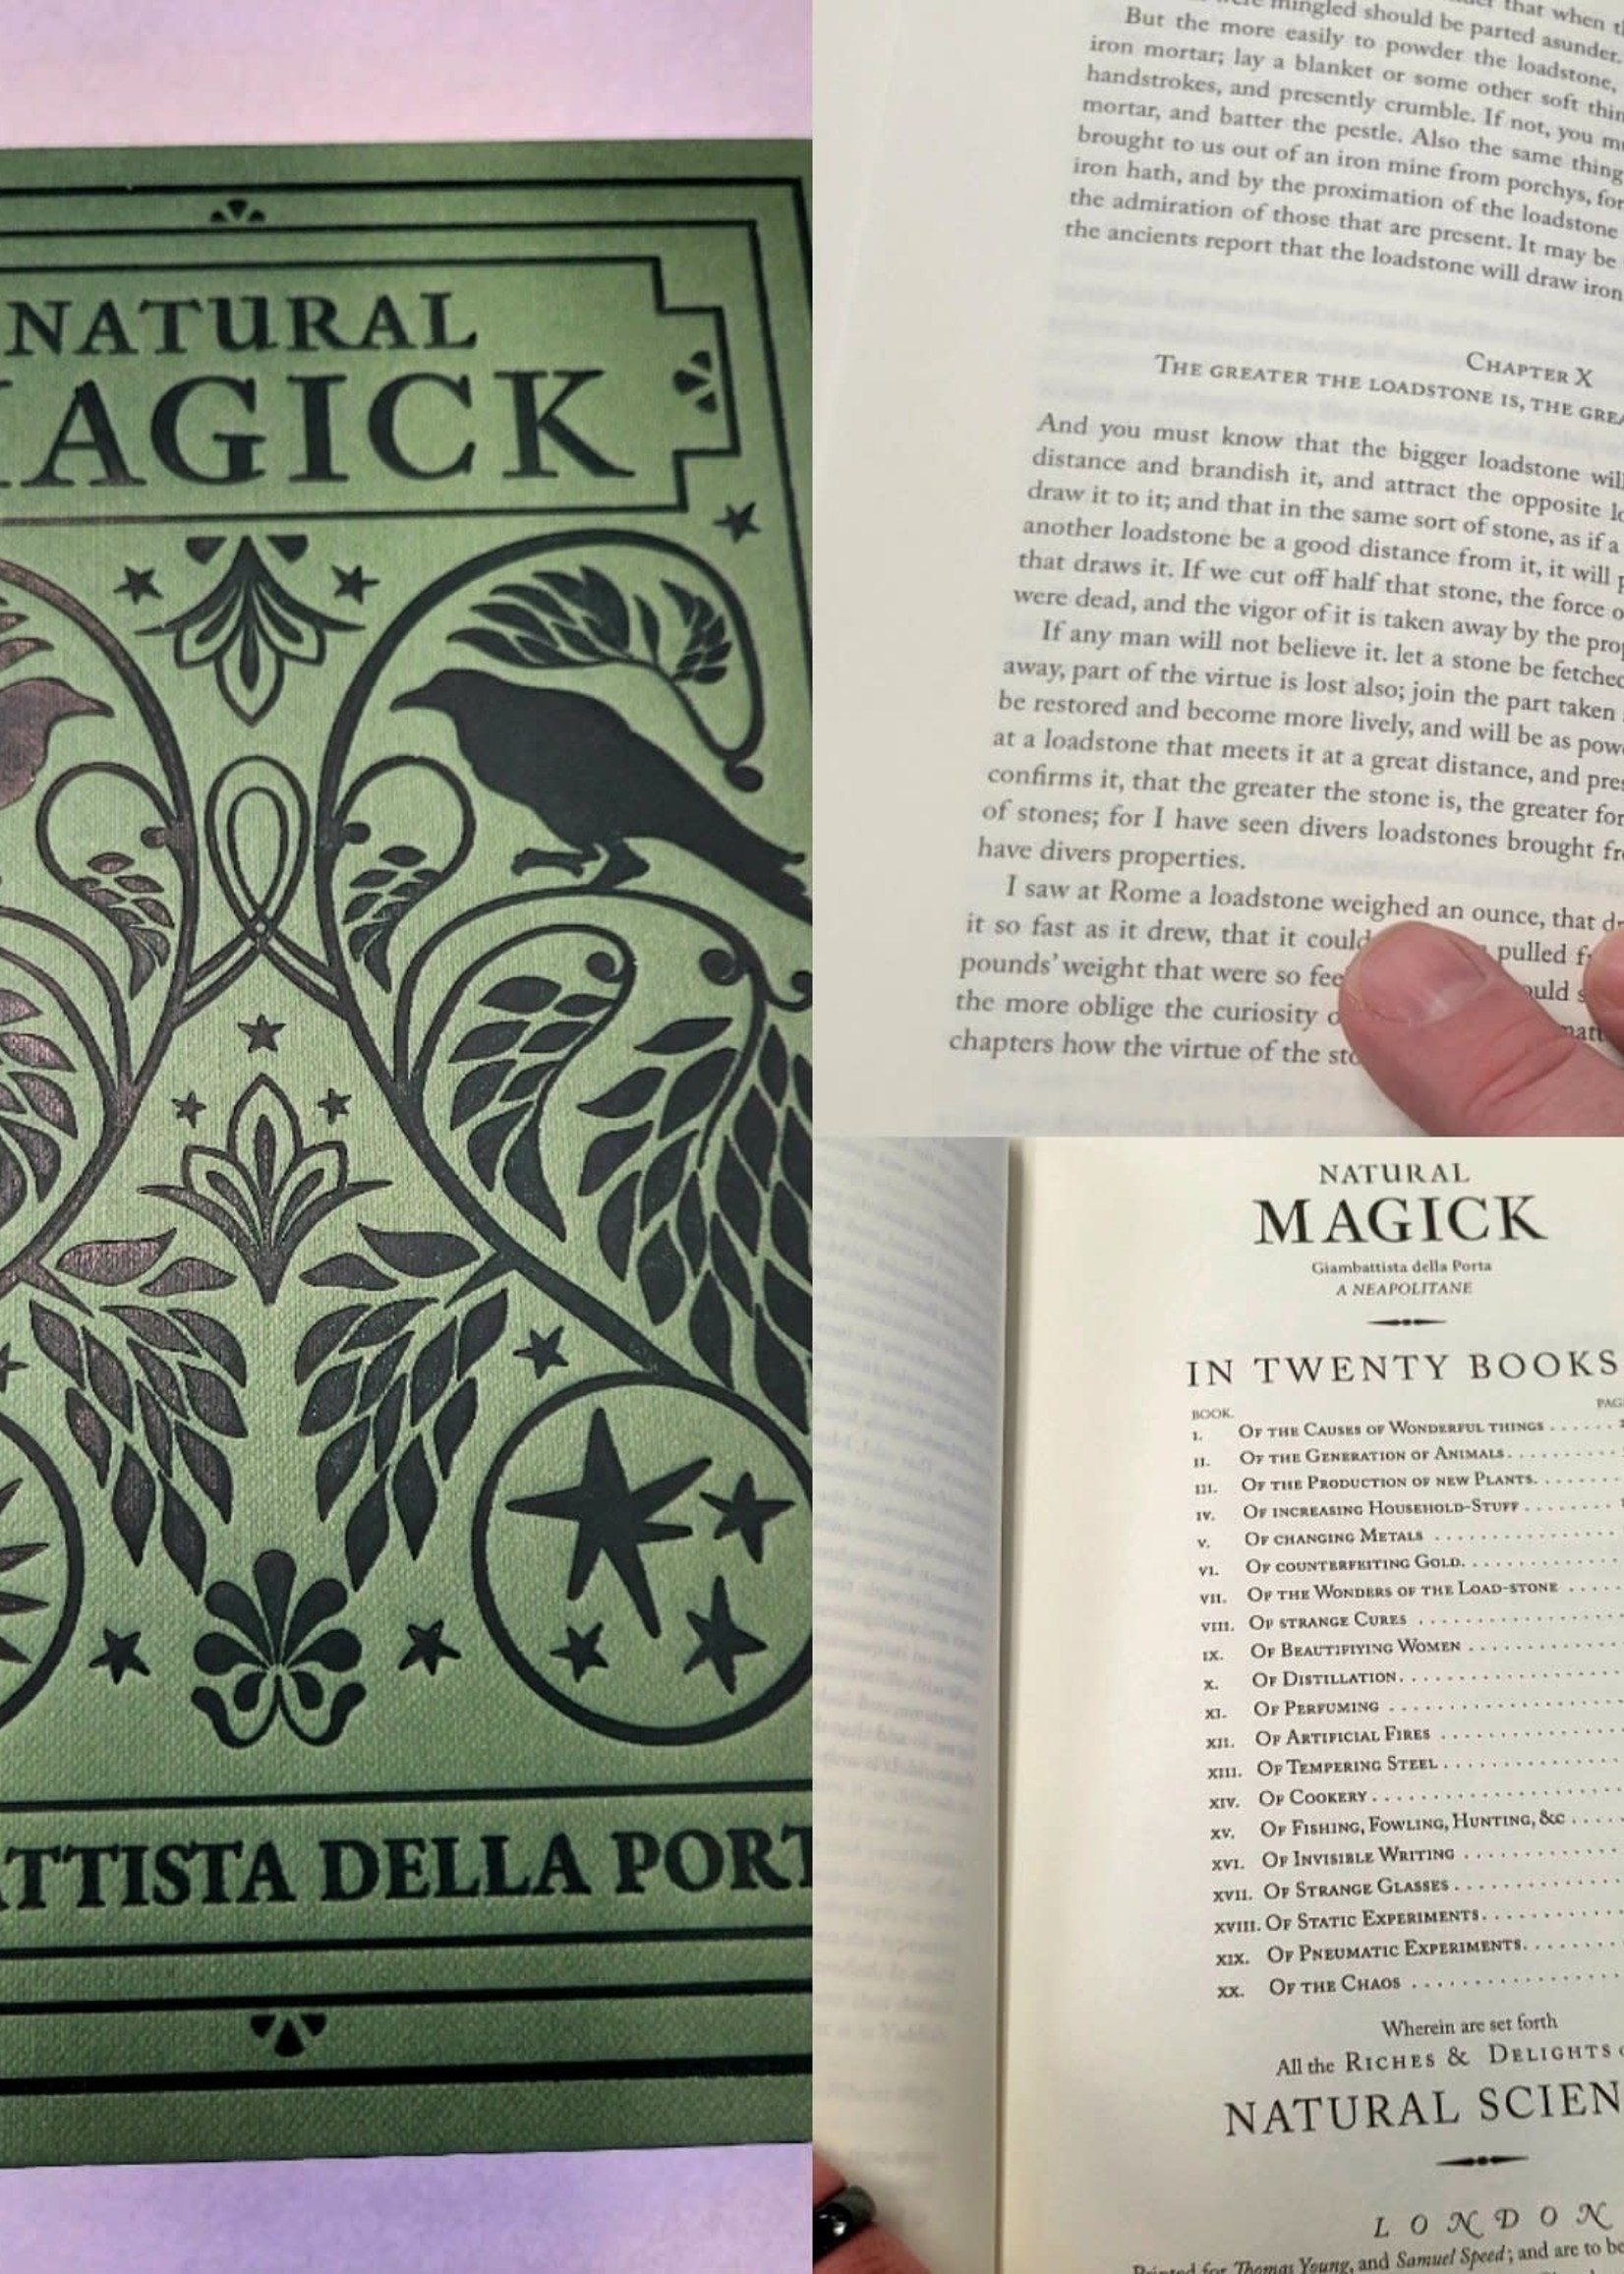 Giambattista della Porta - Natural Magick Revised and Edited by Paul Summers Young  Cover design by Andrei Bouzikov  Illustrations revised by Lea Pieper  Second Edition